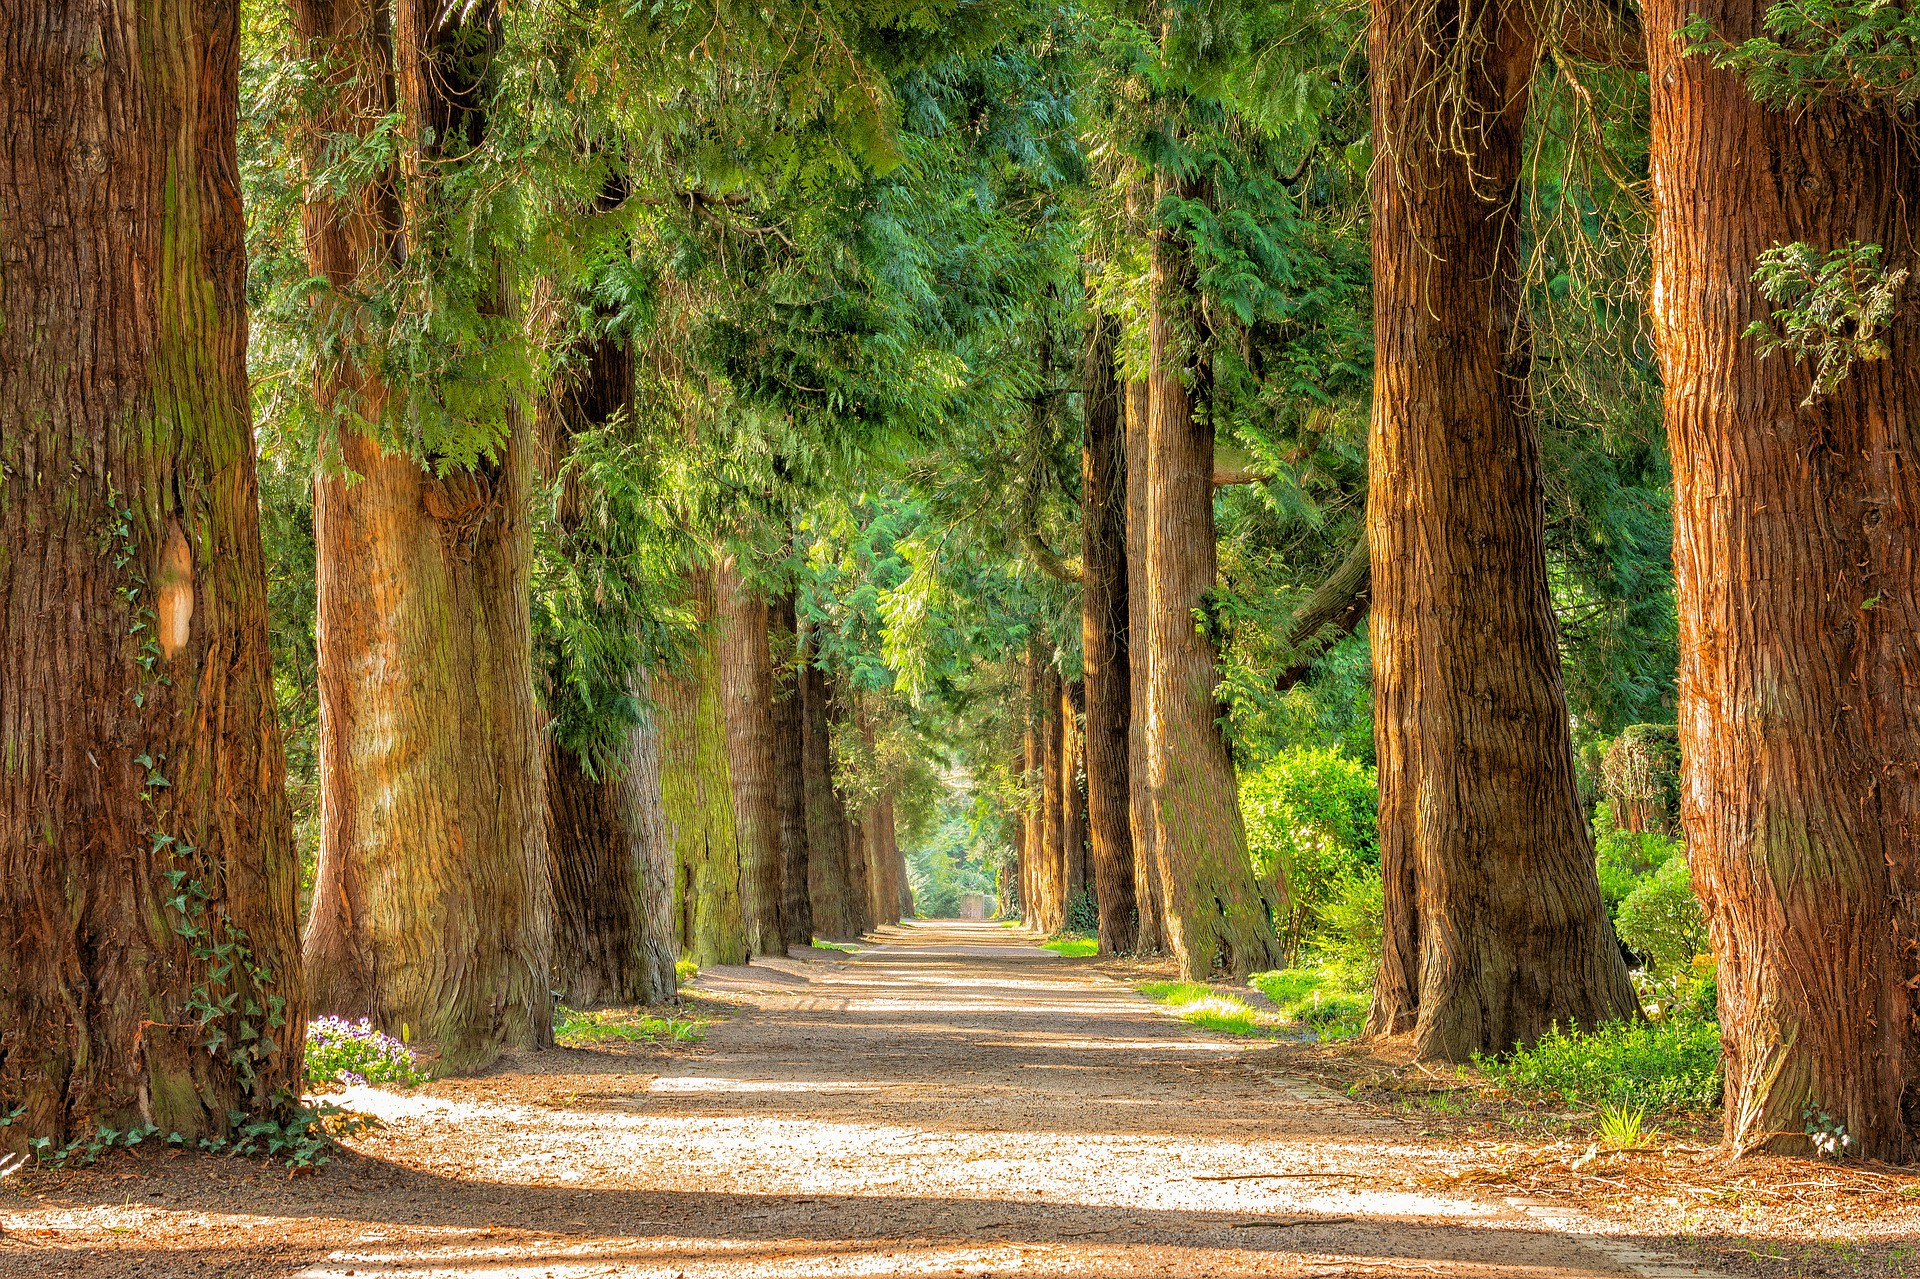 a road amidst a forestry of trees